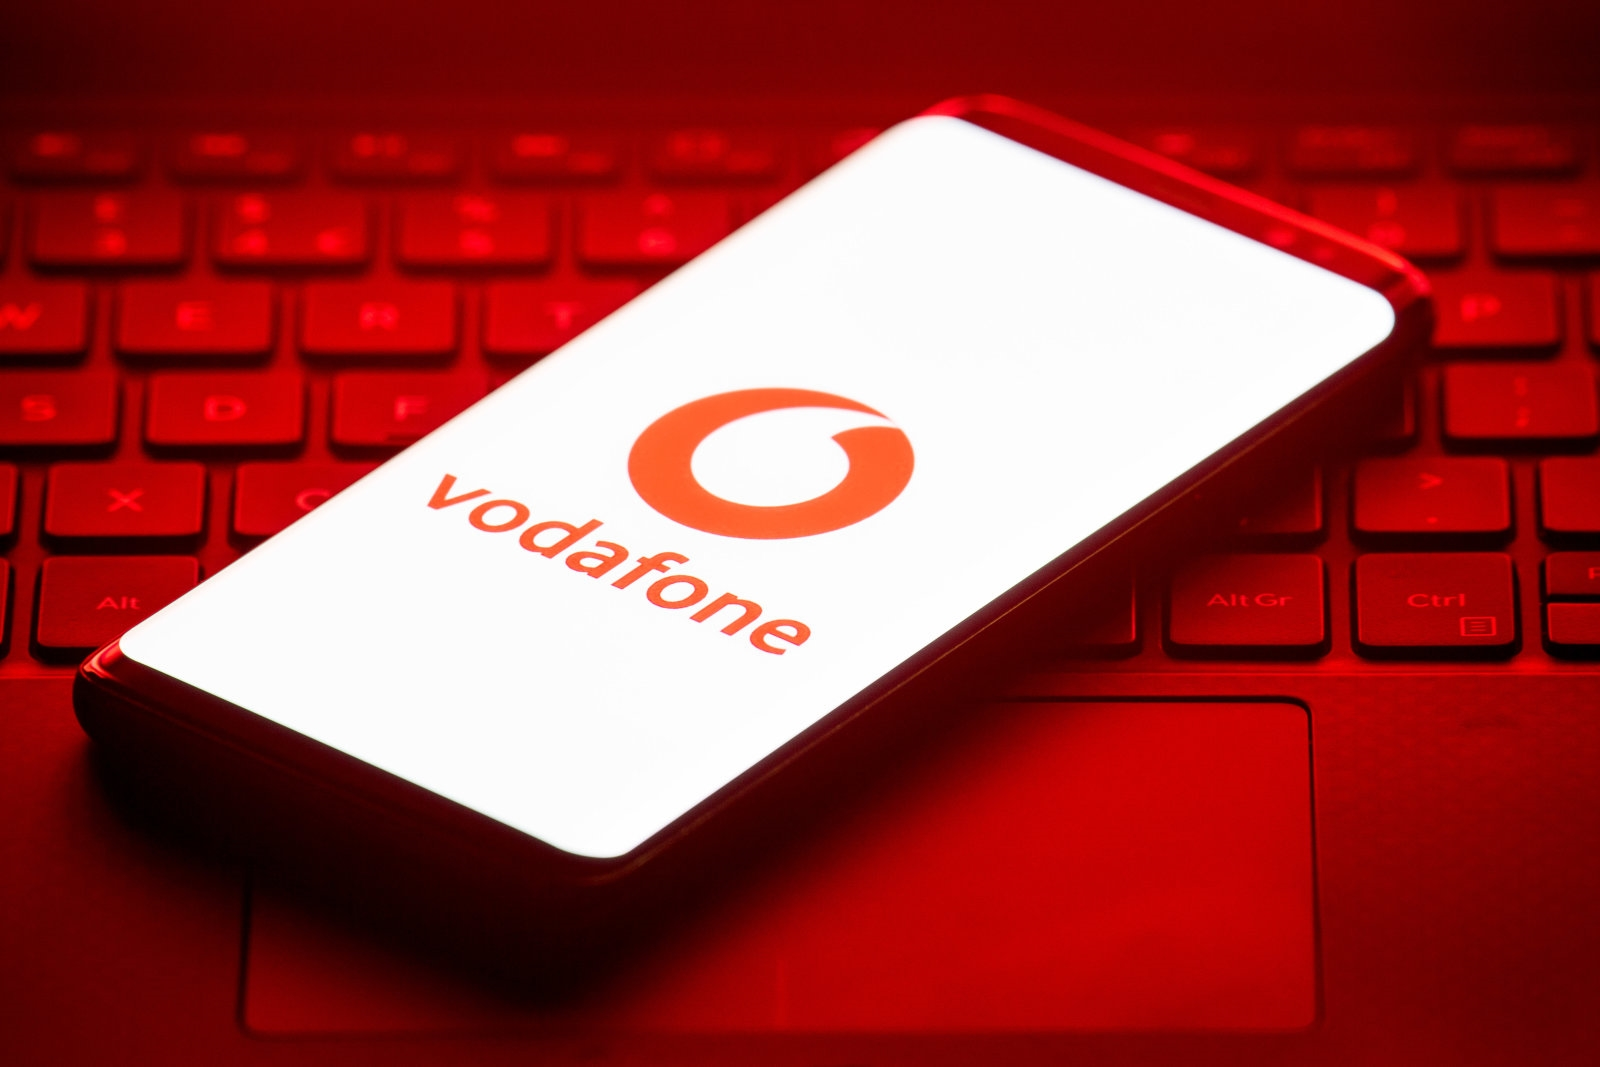 Vodafone tests open cellular radio tech that could lower phone rates | DeviceDaily.com